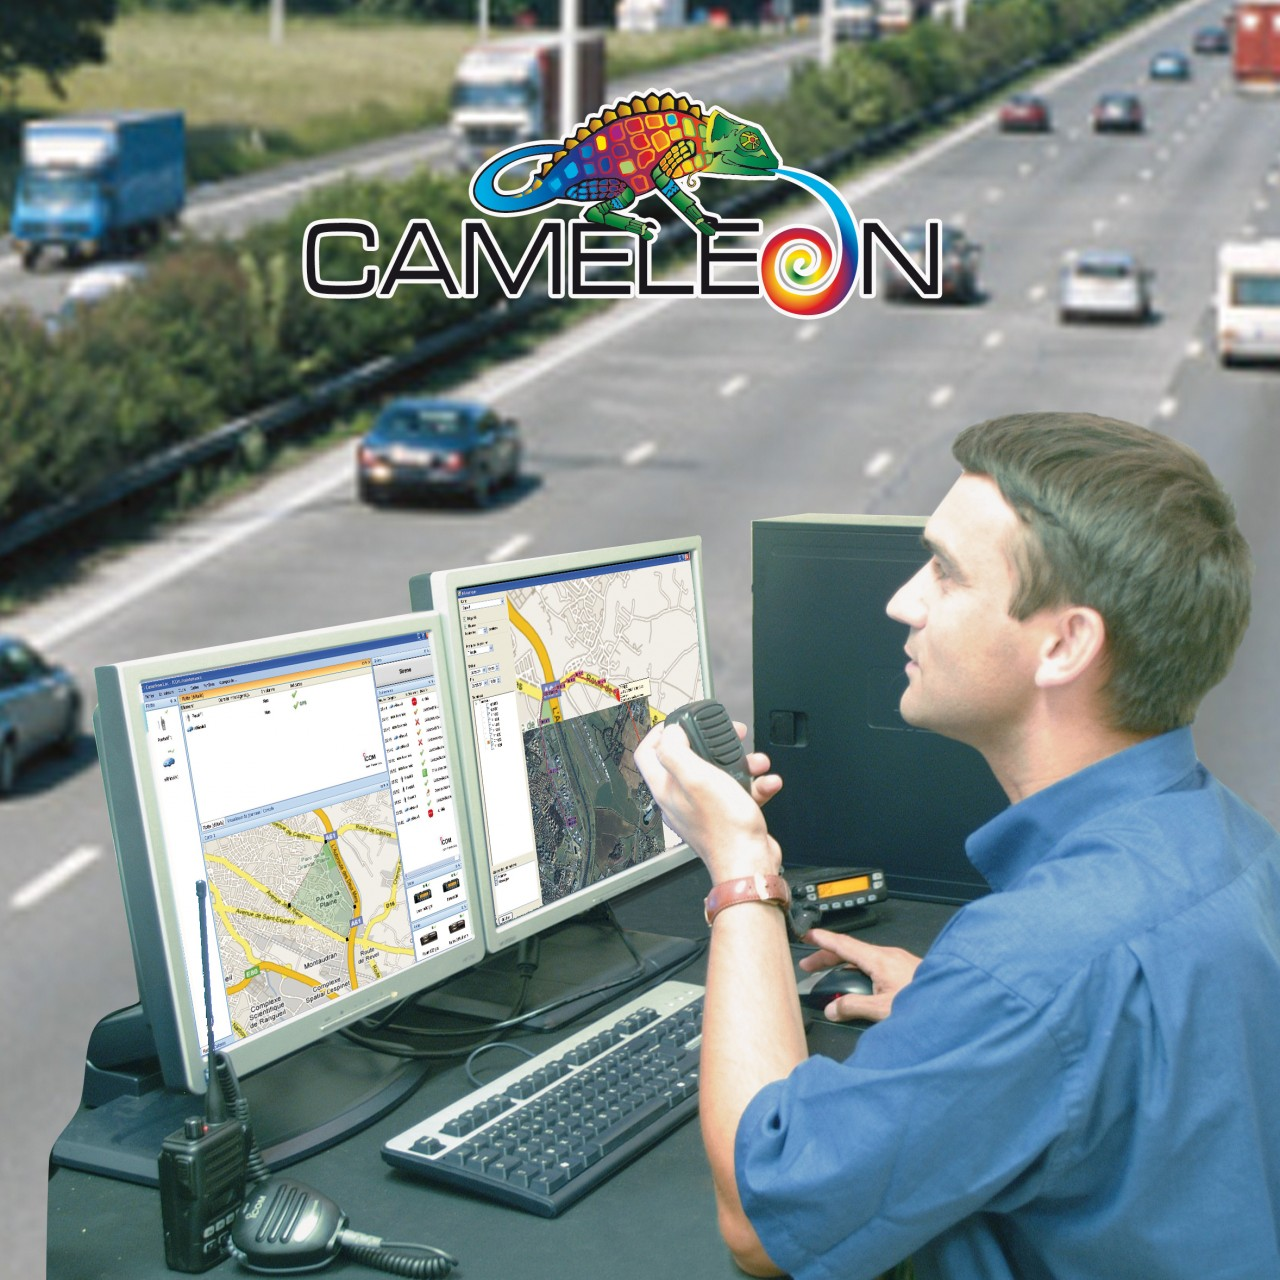 CAMELEON LOC Others - ICOM